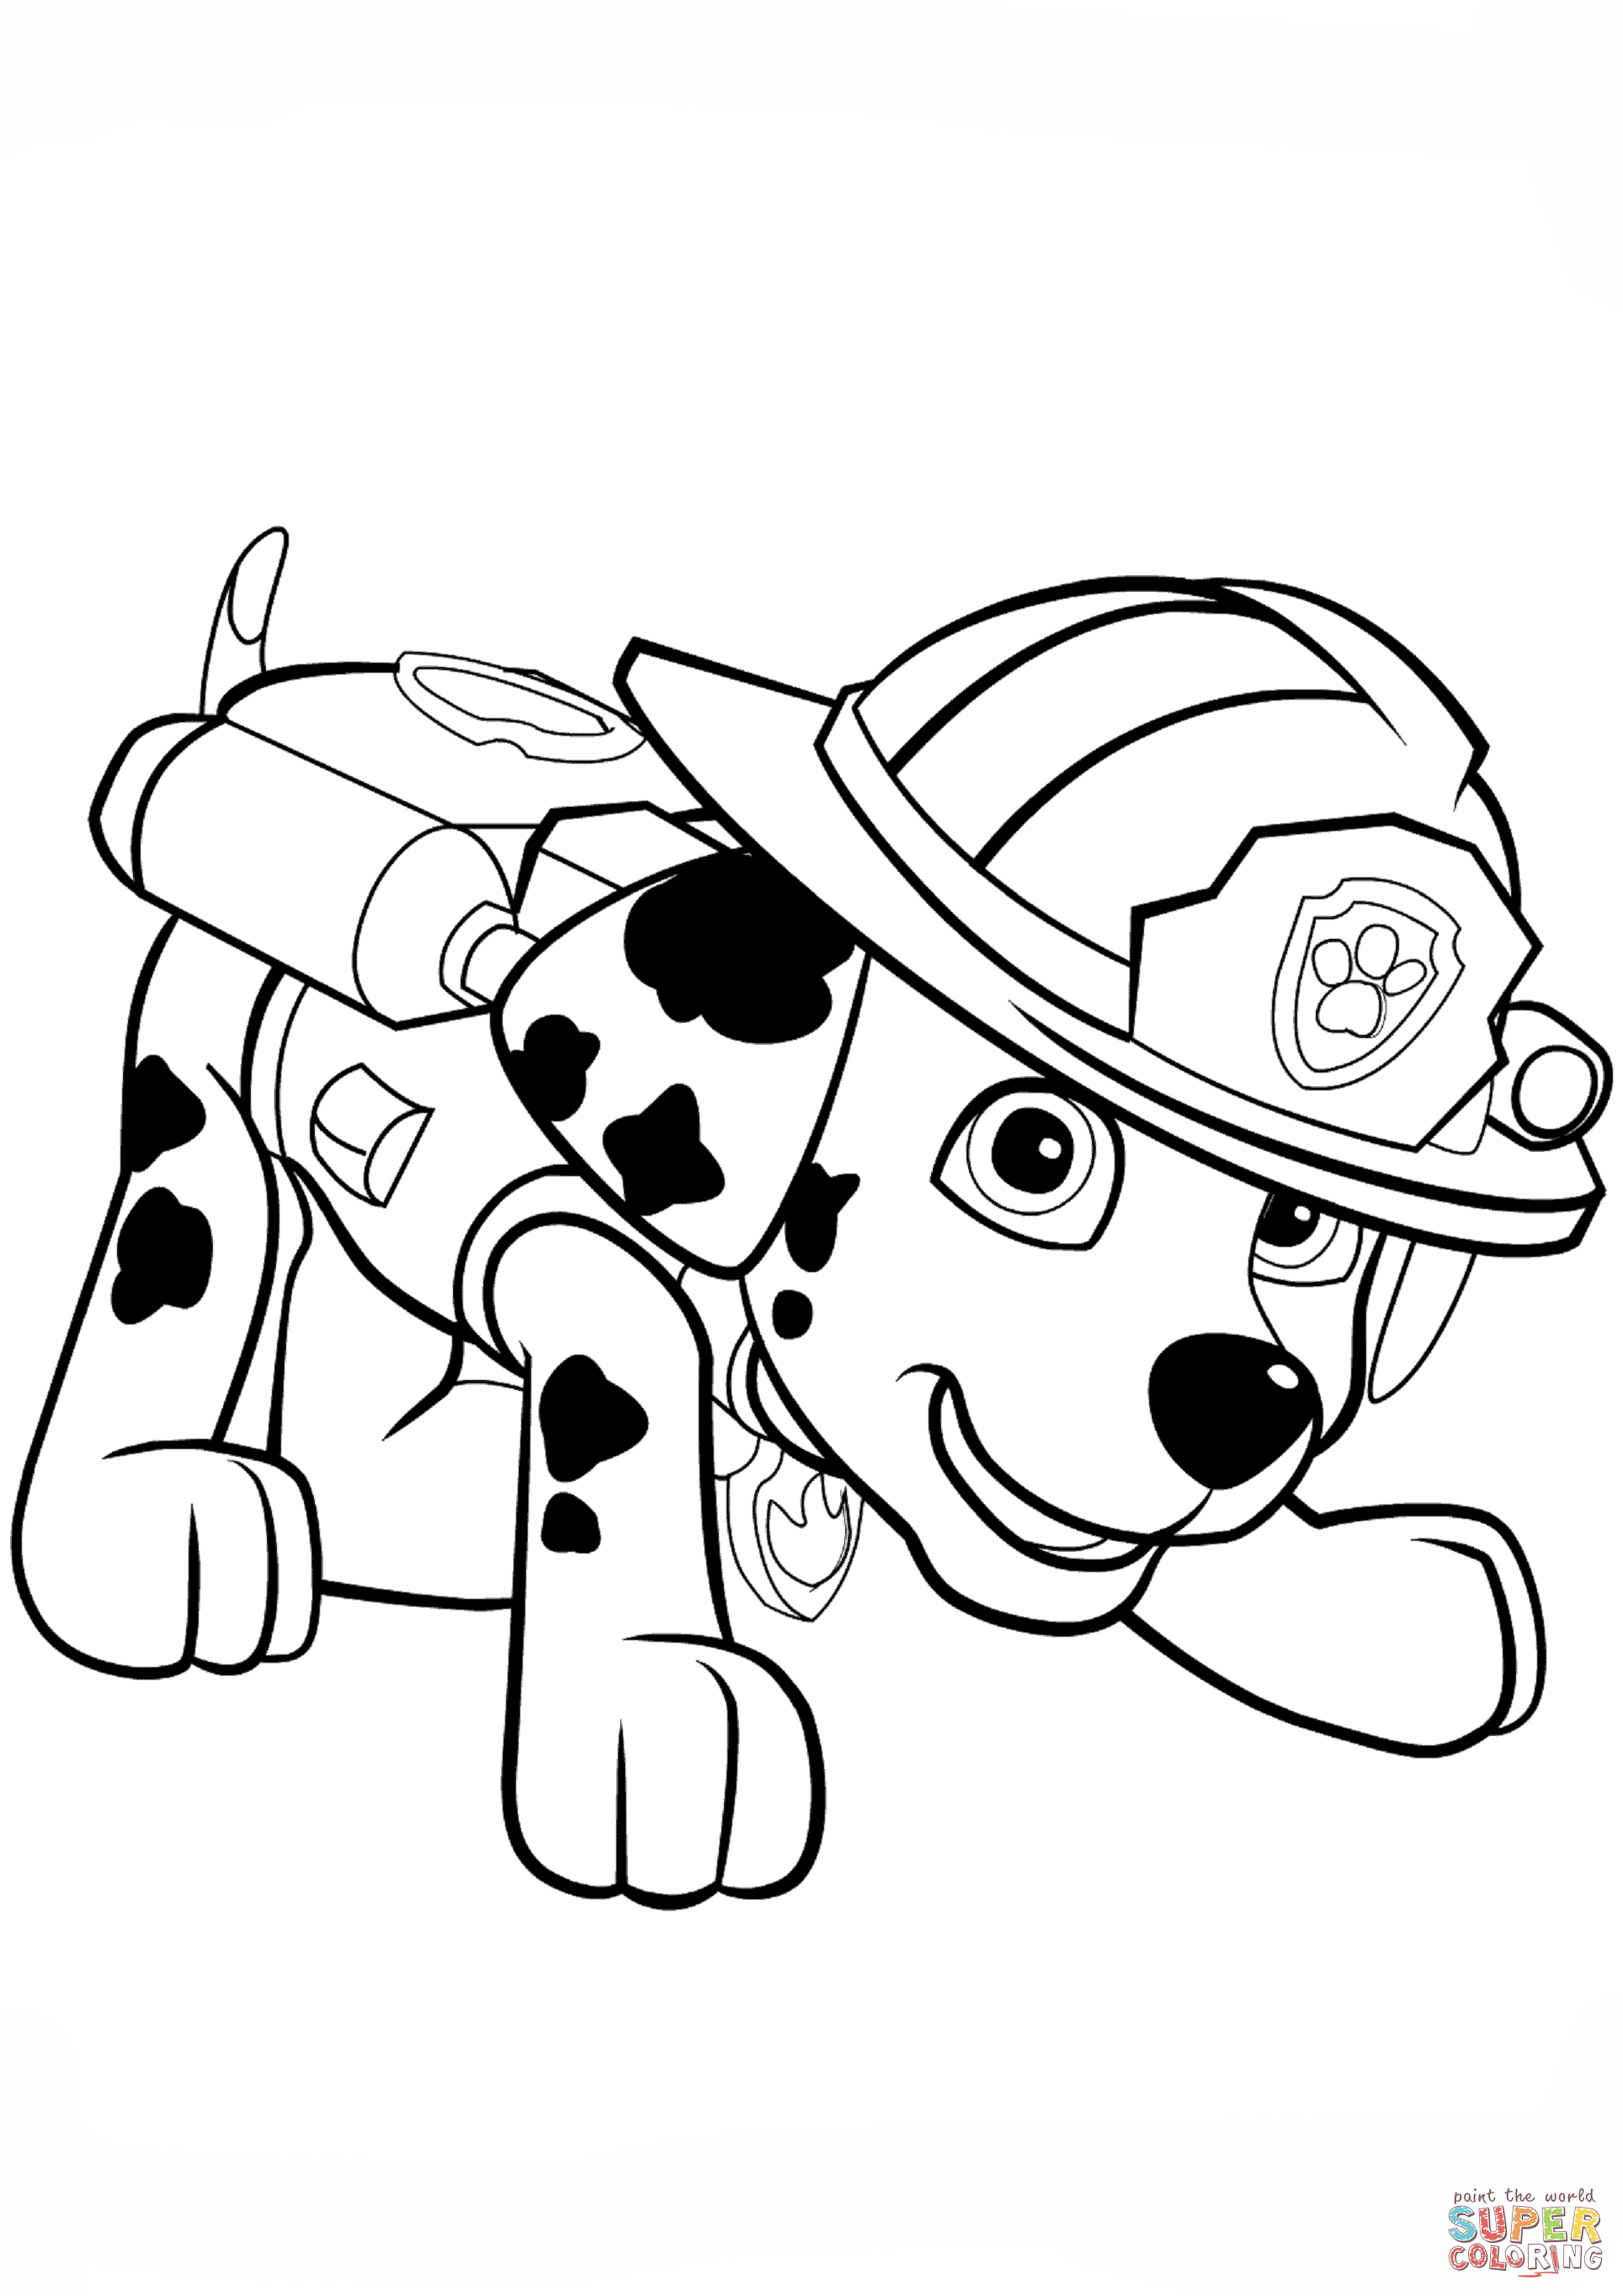 Chase the dog from paw partols clipart coloring page freeuse stock Paw Patrol Marshall Puppy coloring page | Free Printable Coloring ... freeuse stock